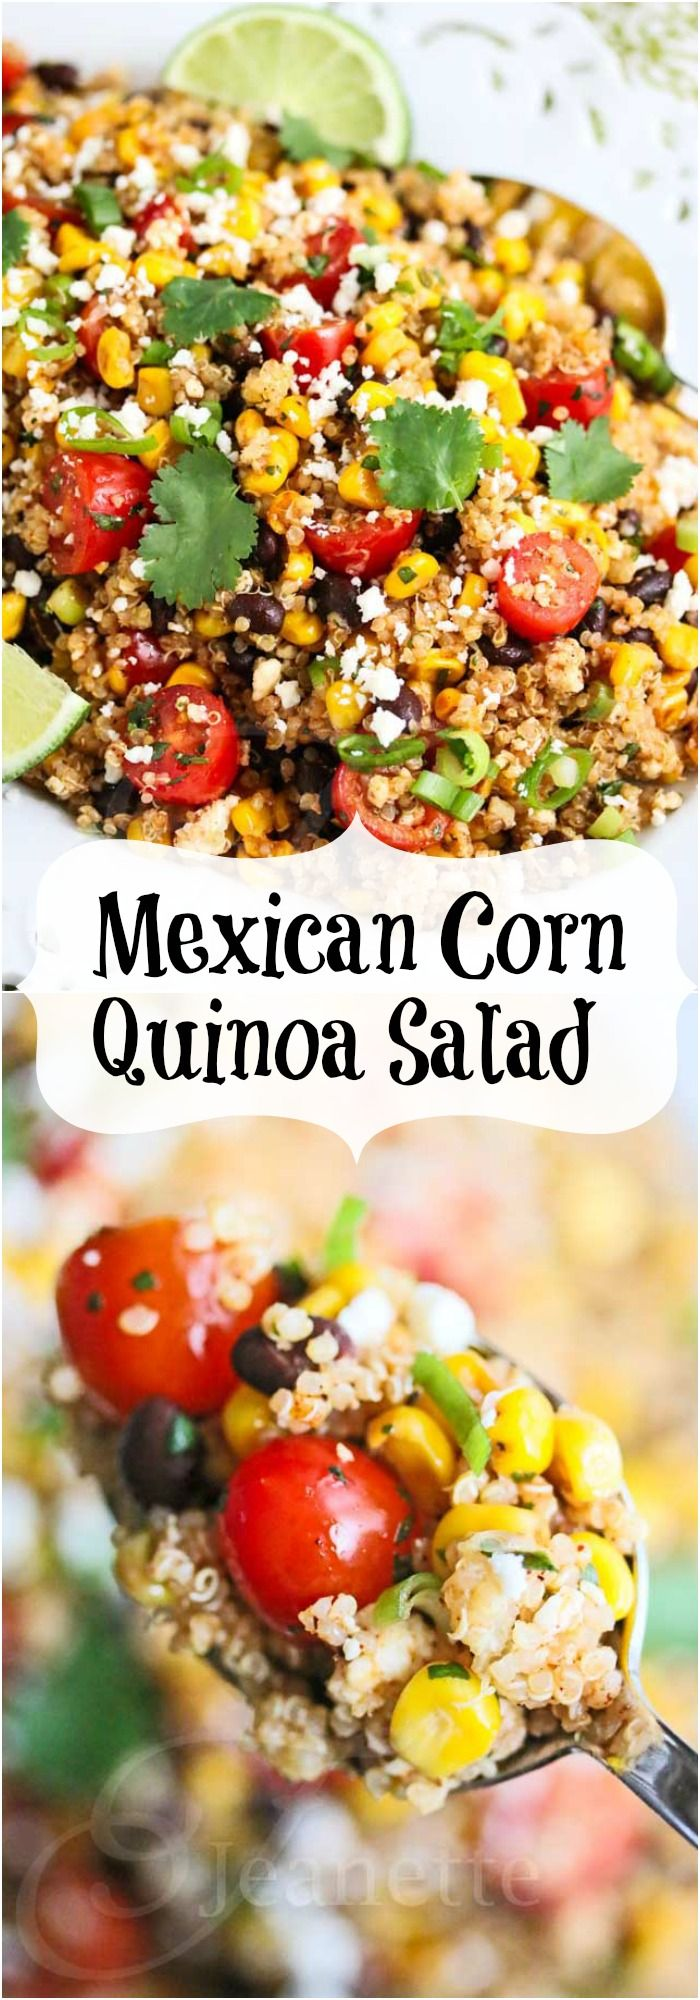 Mexican Corn Quinoa Salad © Jeanette's Healthy Livingcipe Needs To Be  Cut